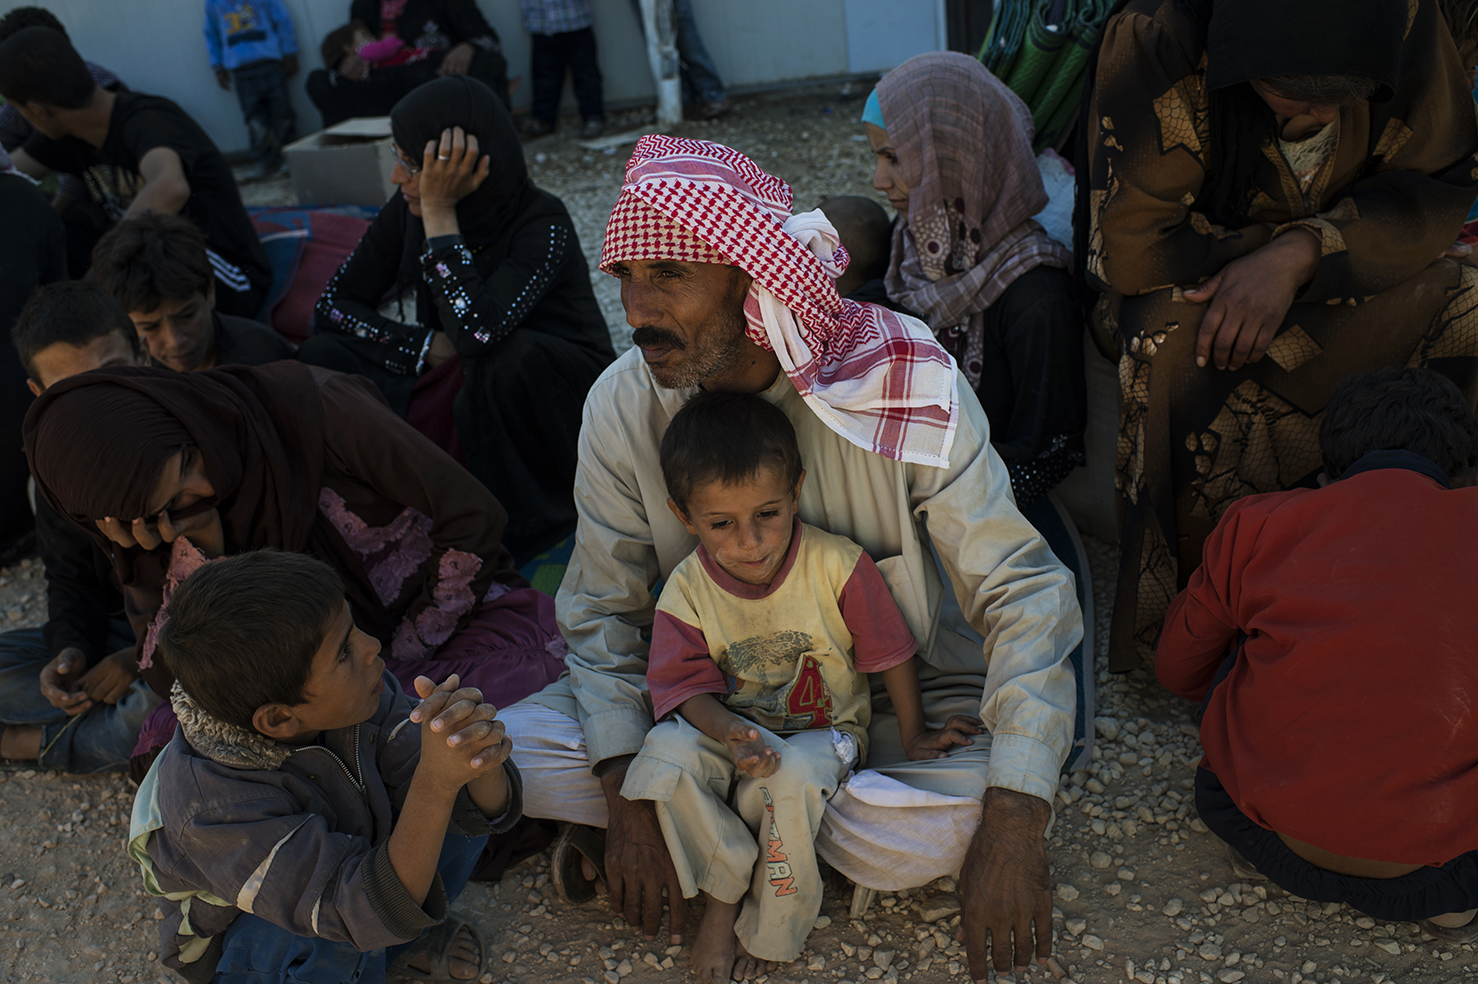 Ayed, 45, a Syrian refugee from Homs, sits with two of his 7 children the morning after crossing into Jordan from Syria, at the United Nations High Commission for Refugees reception center in Zaatari Camp, in Jordan, September 16, 2013. There are an estimated 600,000 refugees in Jordan, and two million refugees in countries bordering Syria as Syria's civil war rages in its third year